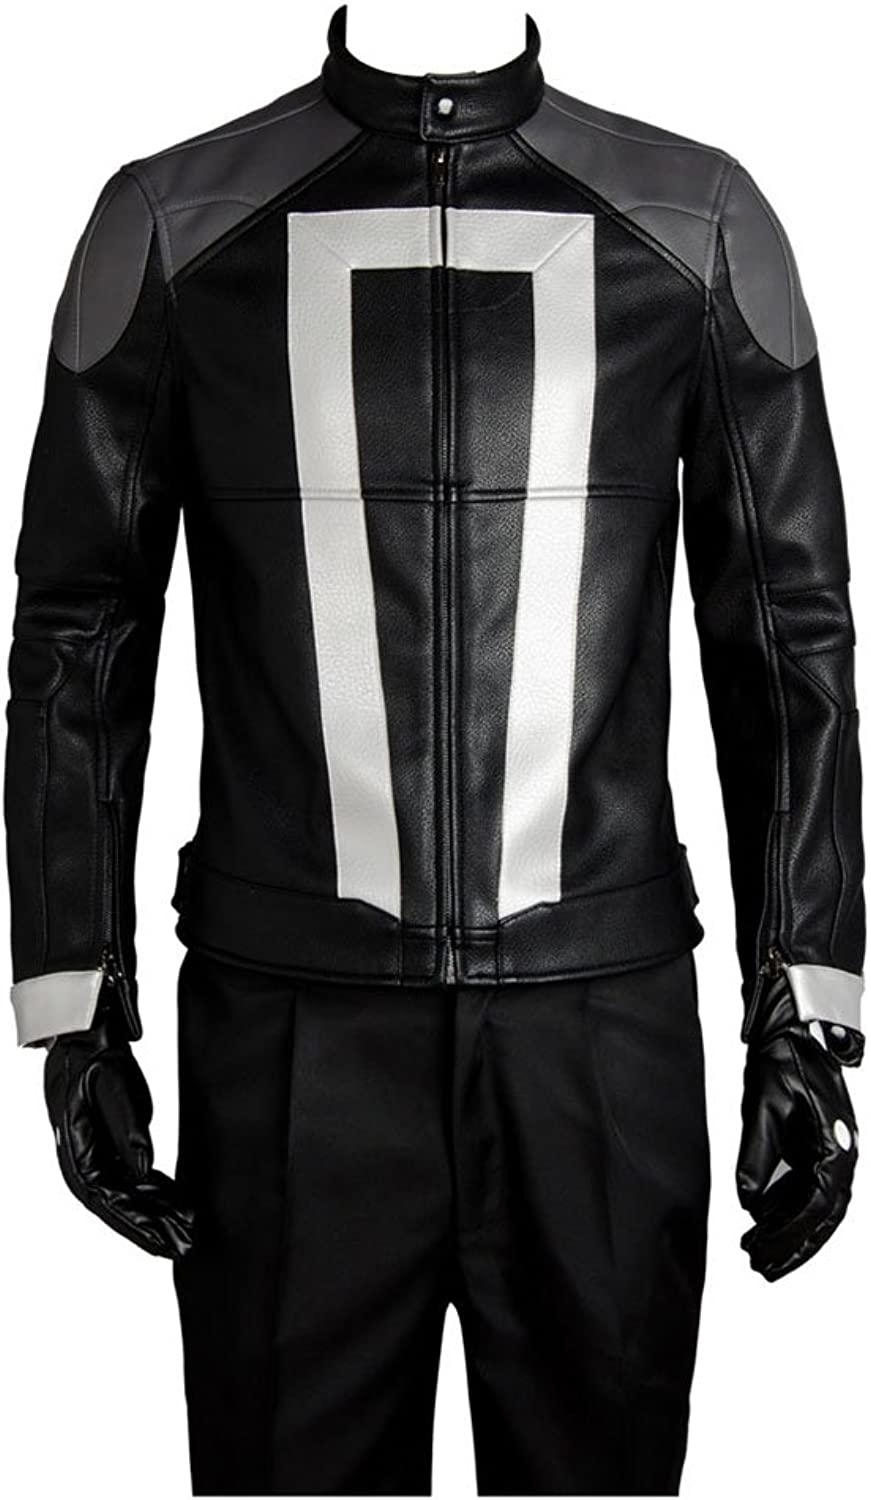 Agents of Shield S.H.I.E.L.D Ghost Rider Cosplay Kostüm Suit Herren M